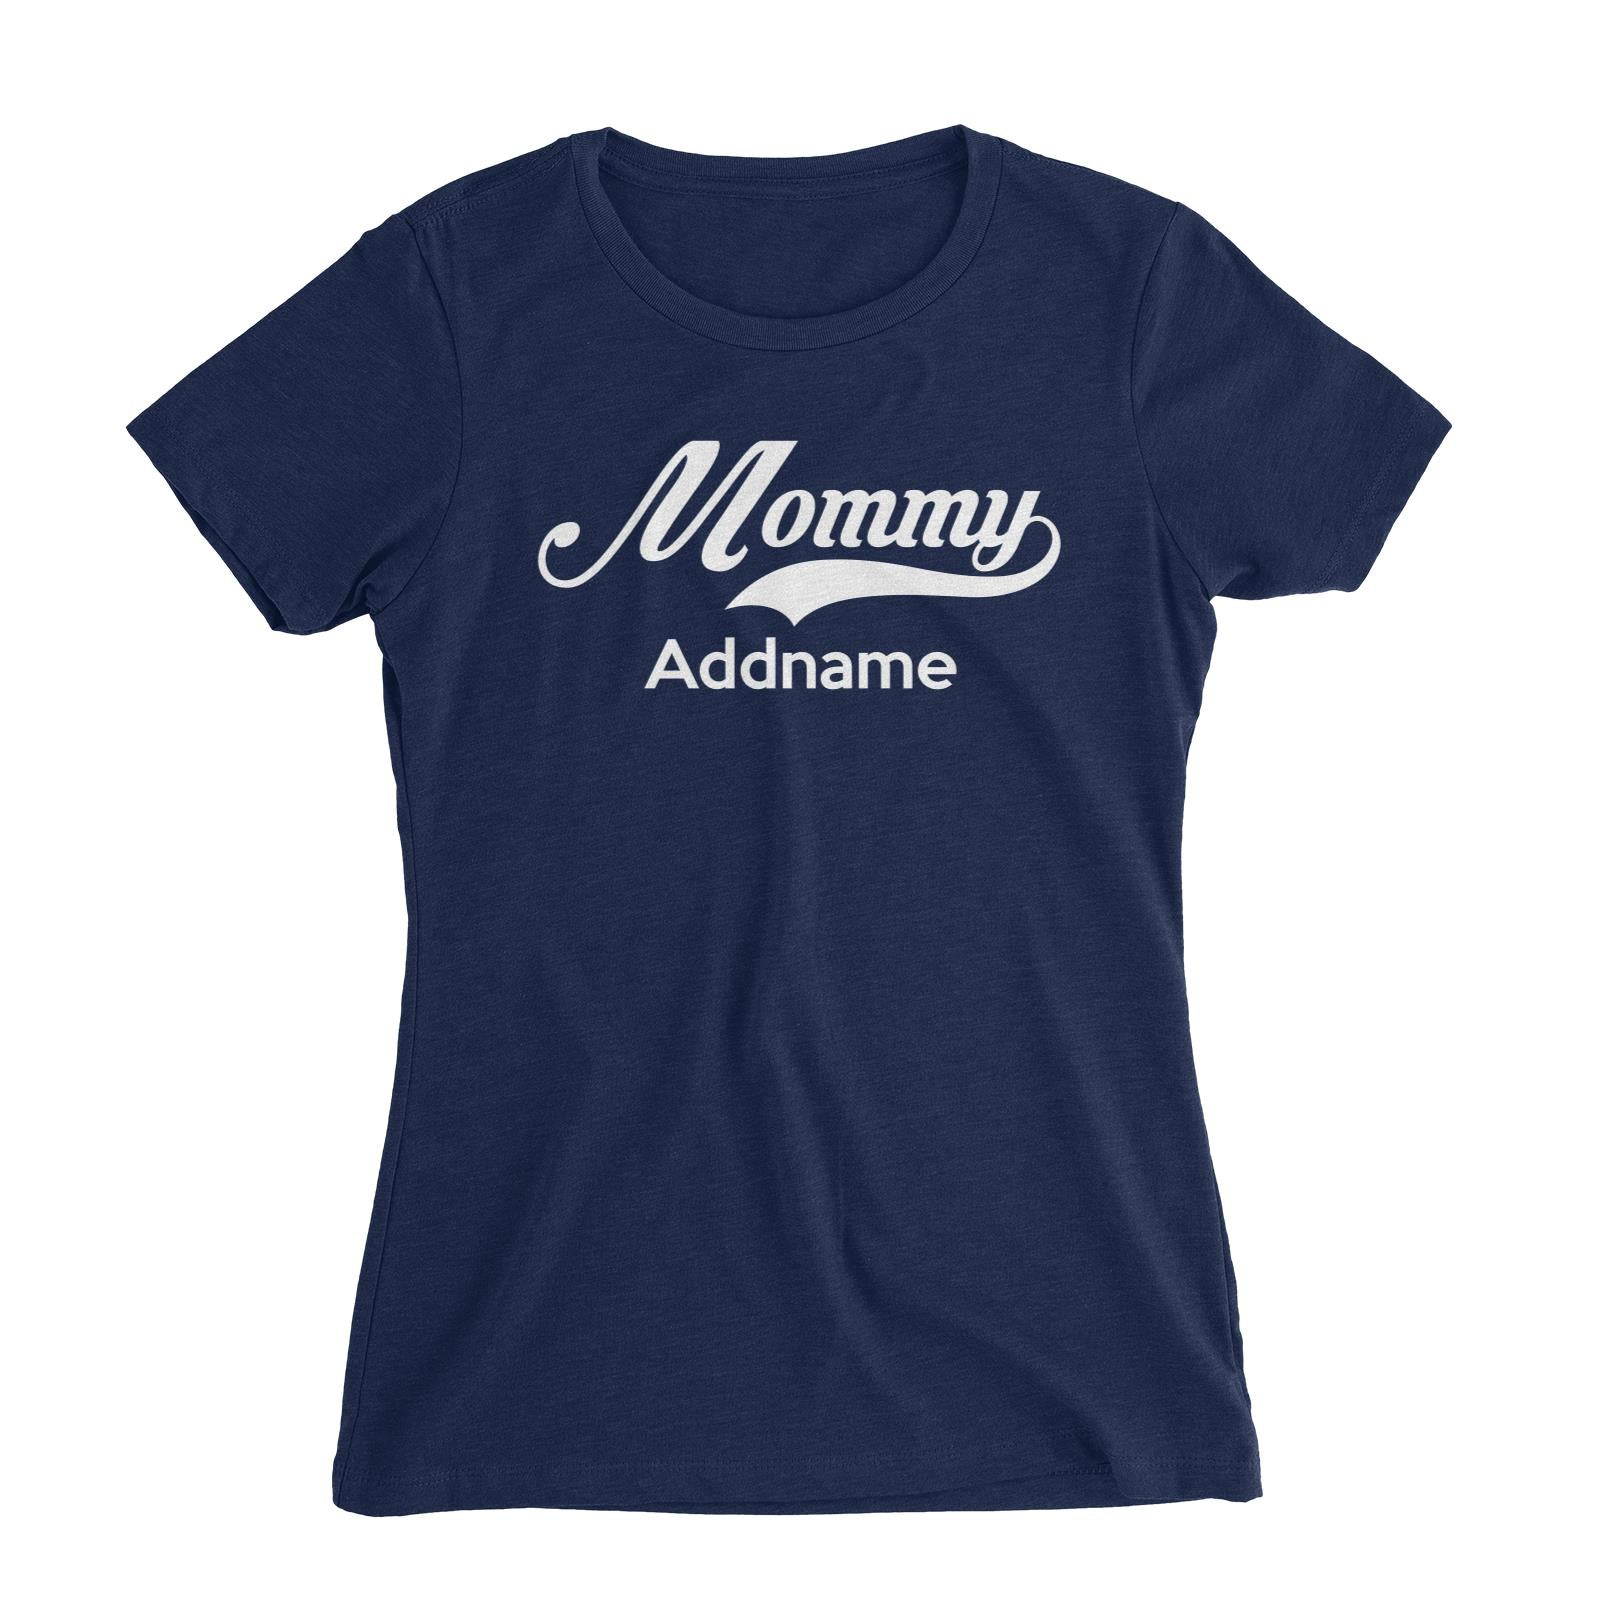 Retro Mommy Addname Women's Slim Fit T-Shirt  Matching Family Personalizable Designs